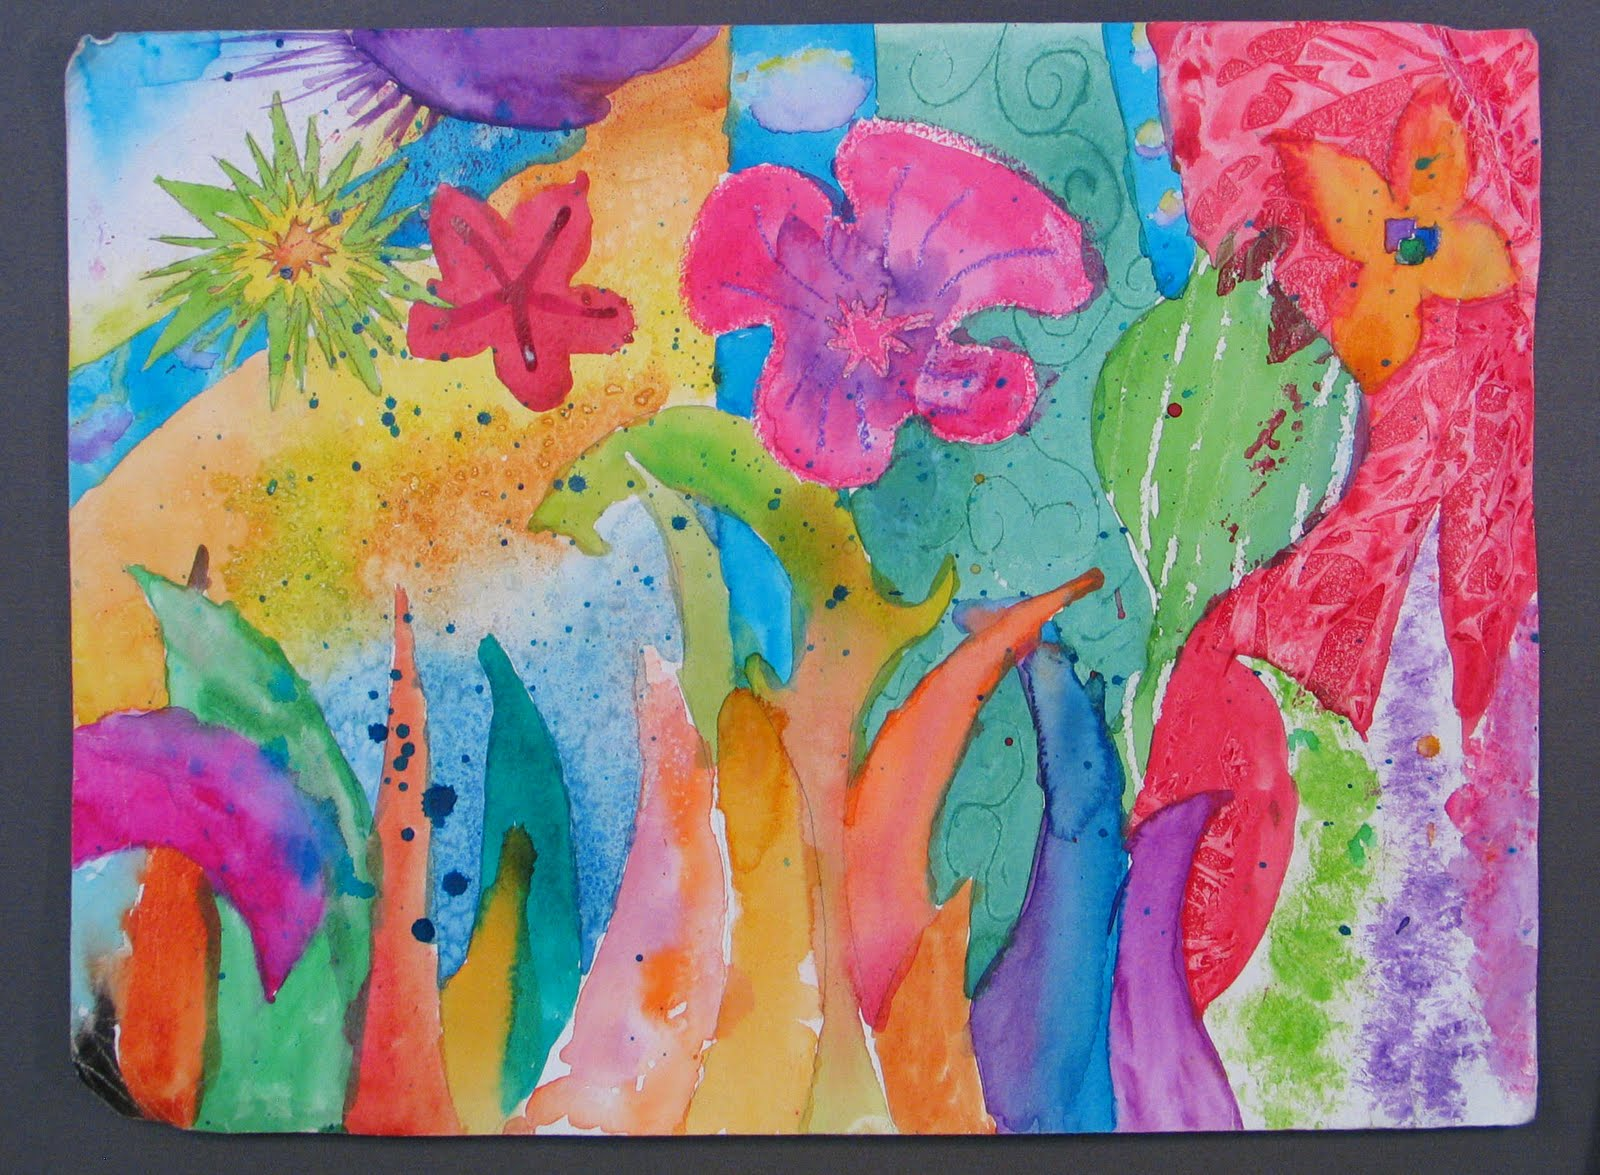 This is an abstract watercolor that sorta looks like a garden with the